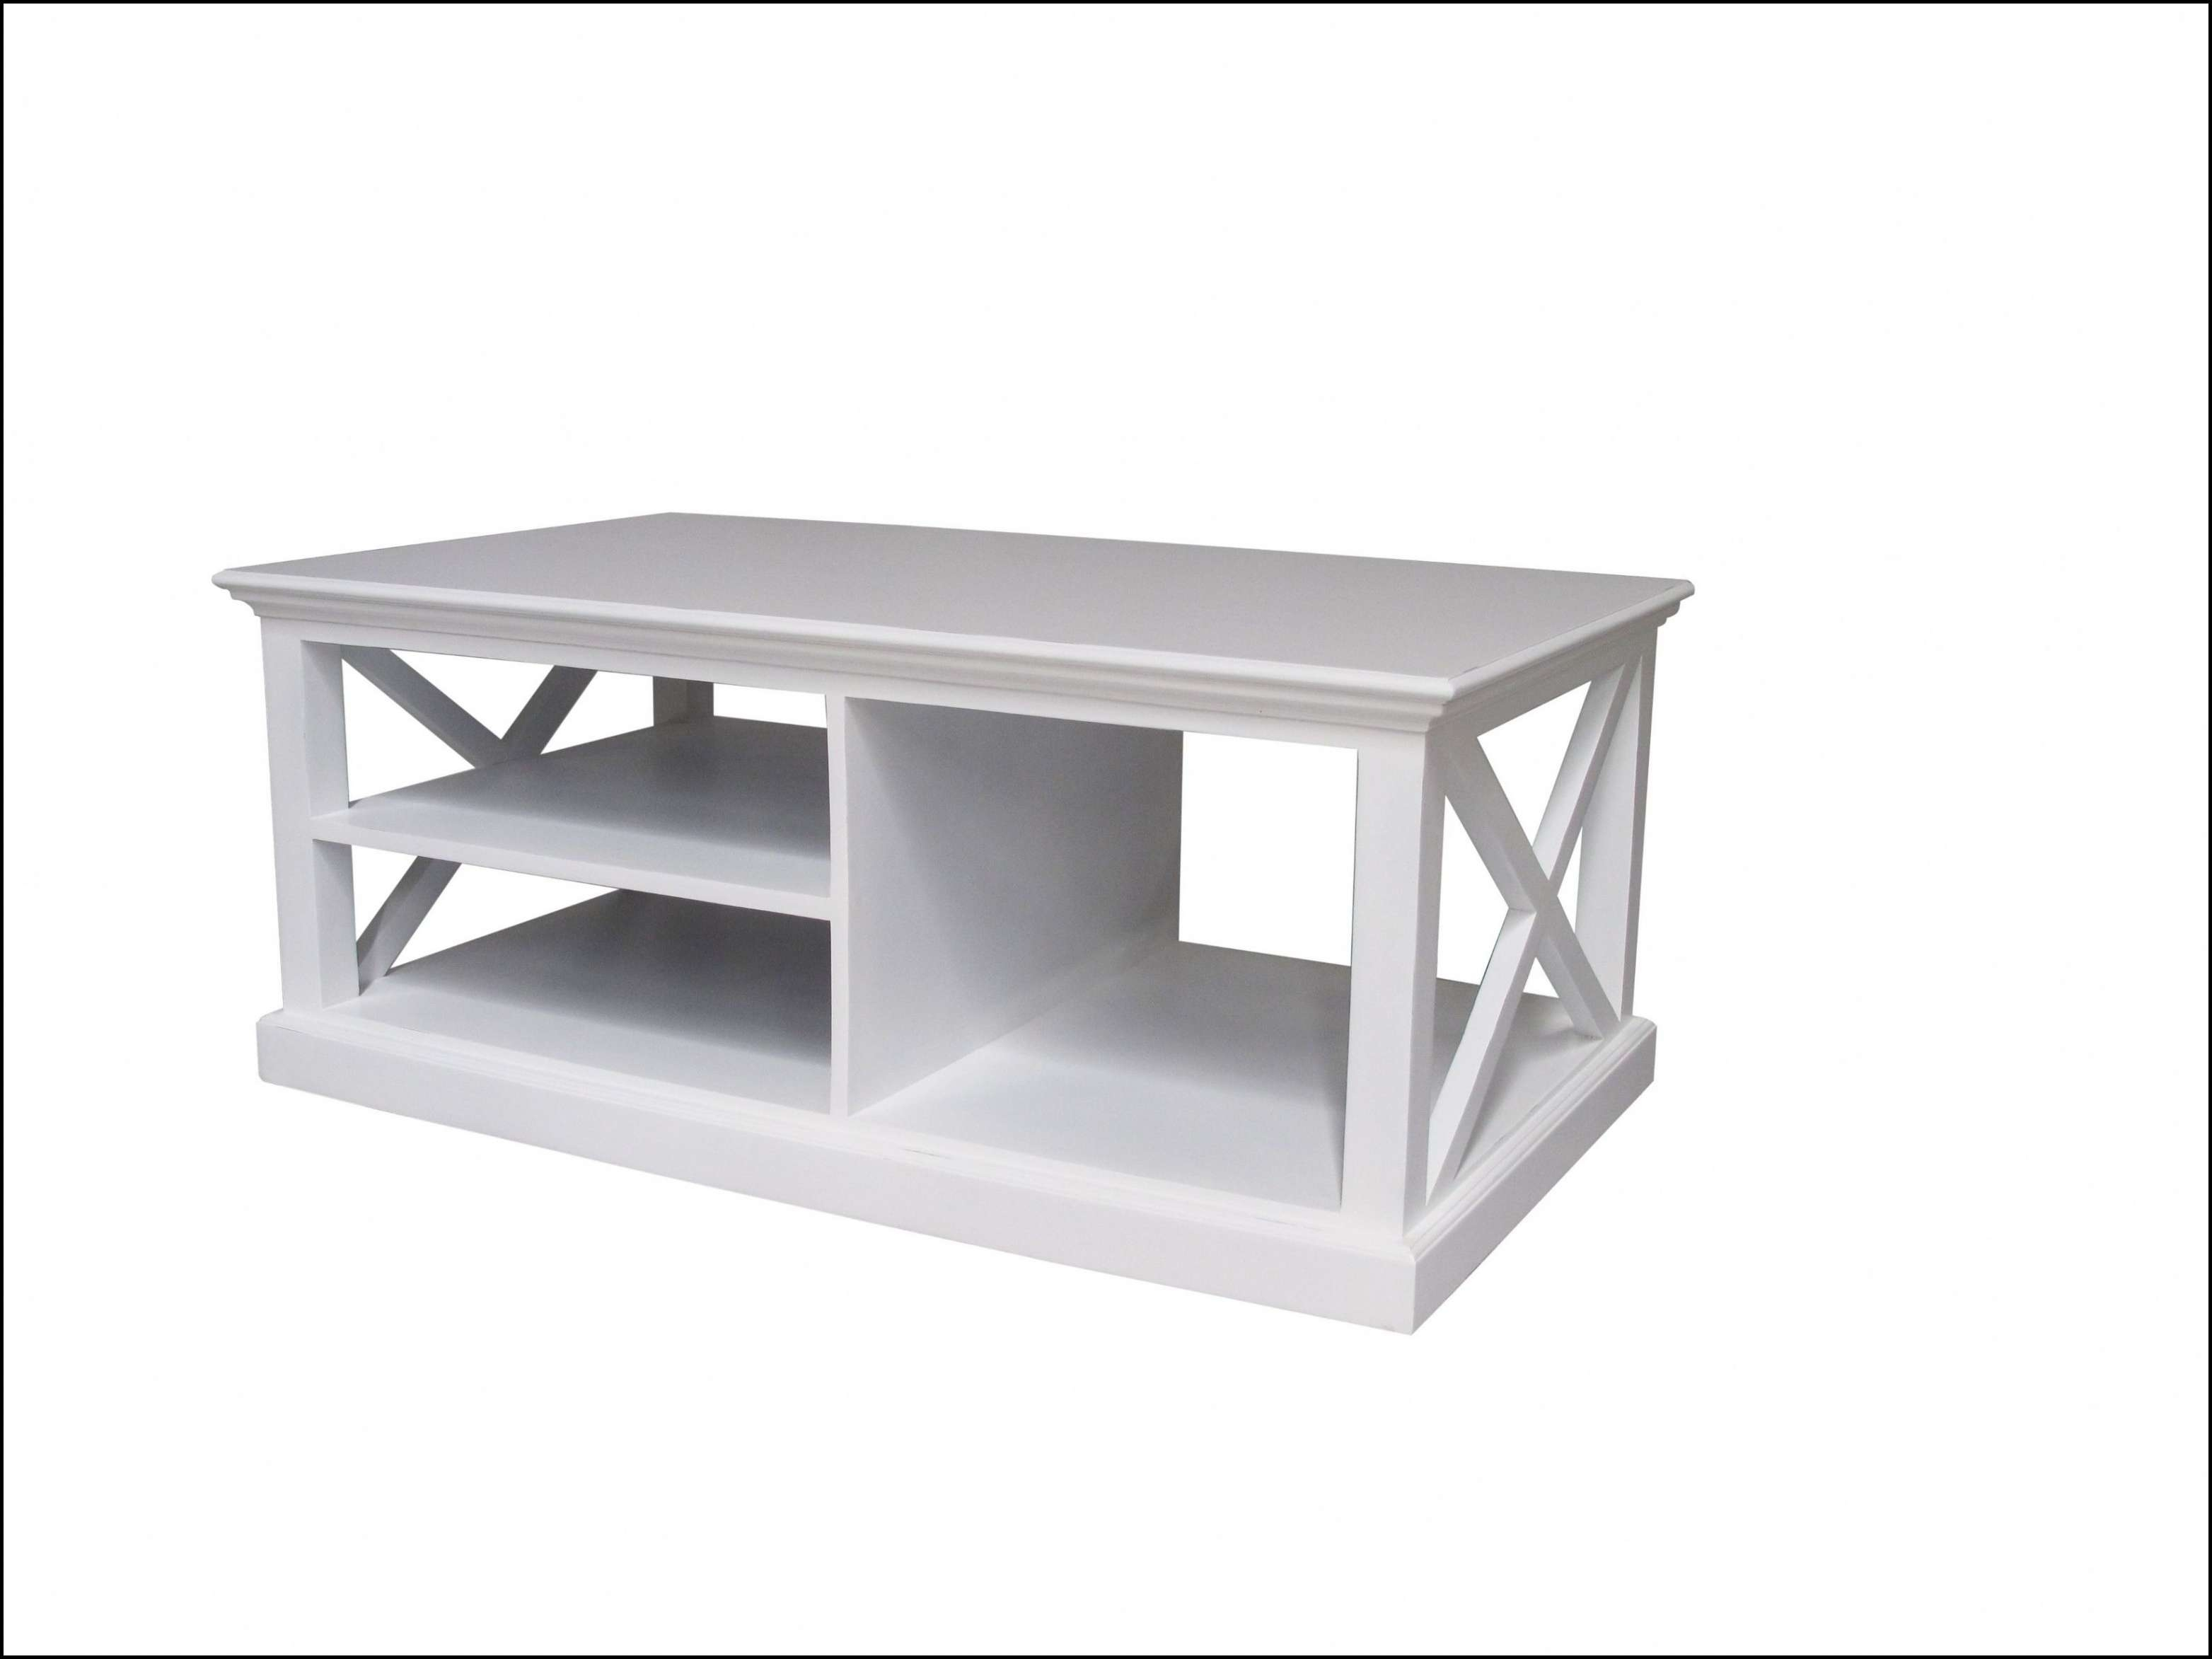 Bordeaux Coffee Table Ikea Unique Impactful Modern White Coffee With Regard To Recent Bordeaux Coffee Tables (View 7 of 20)